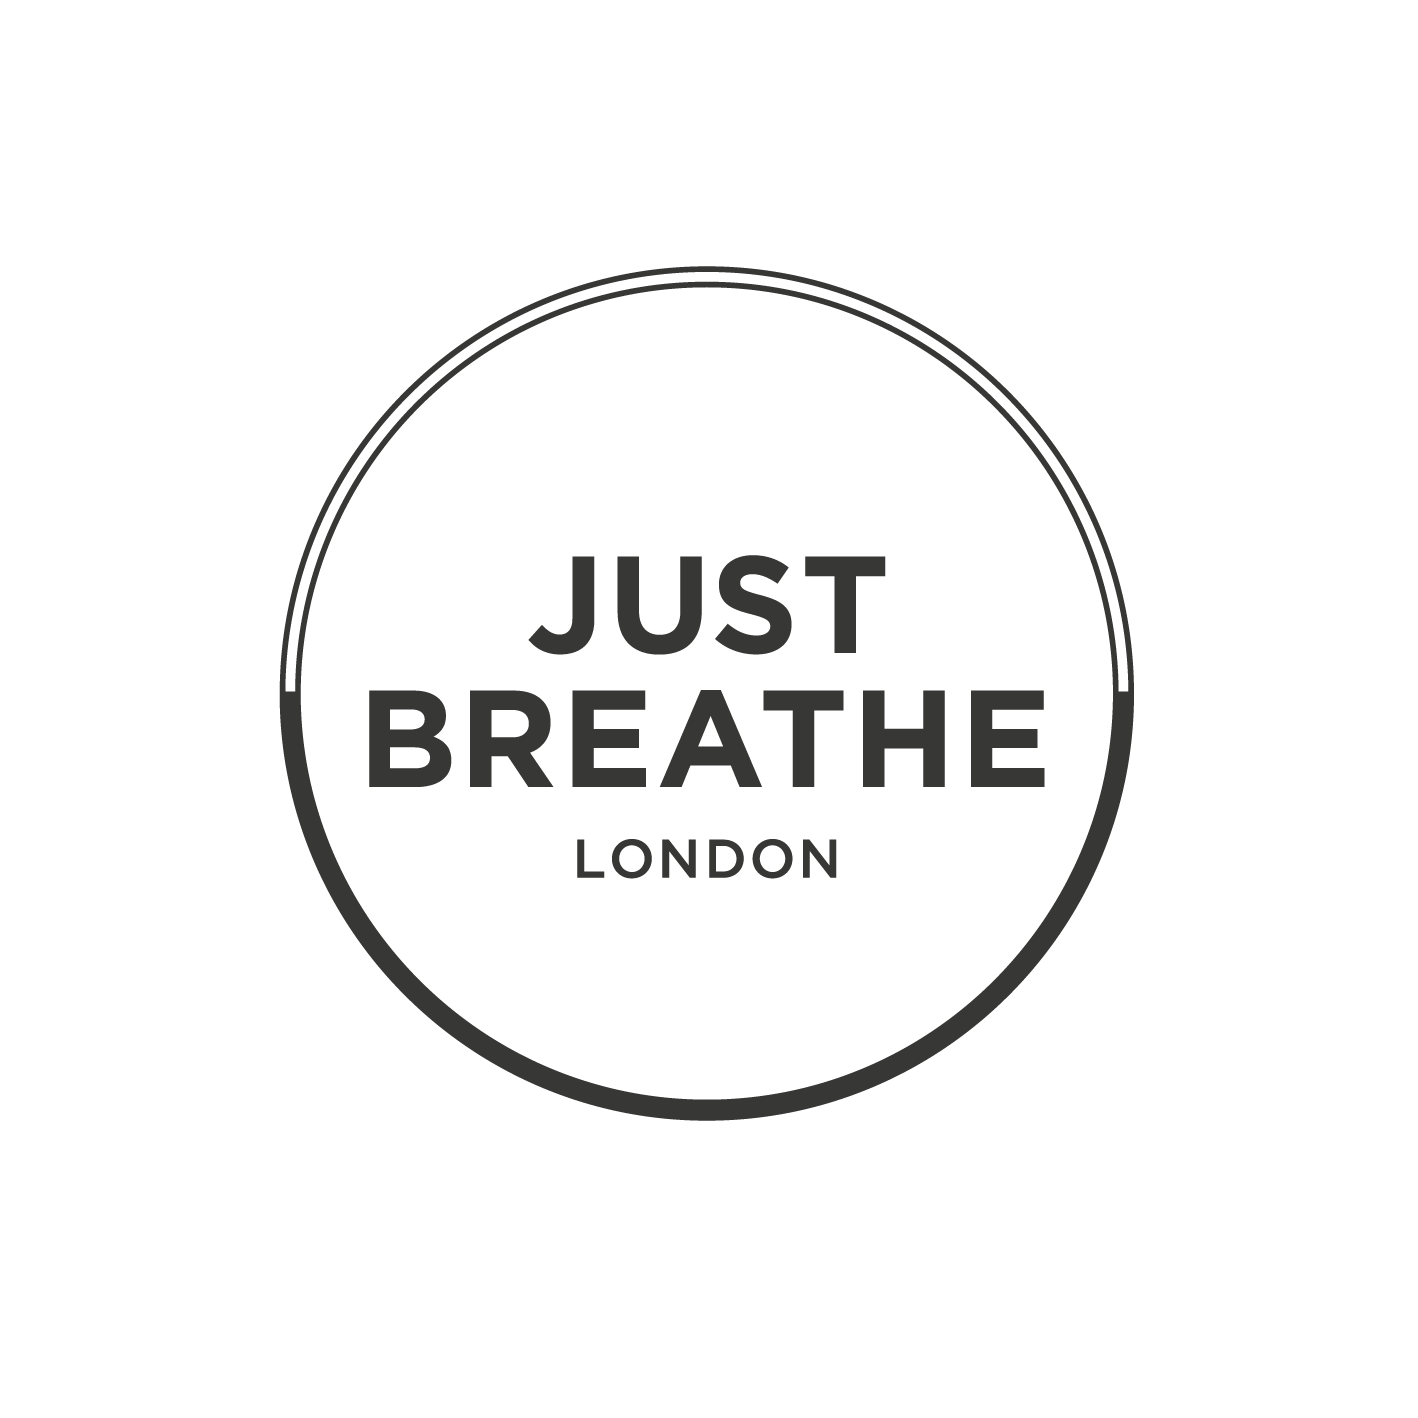 JUST BREATHE London